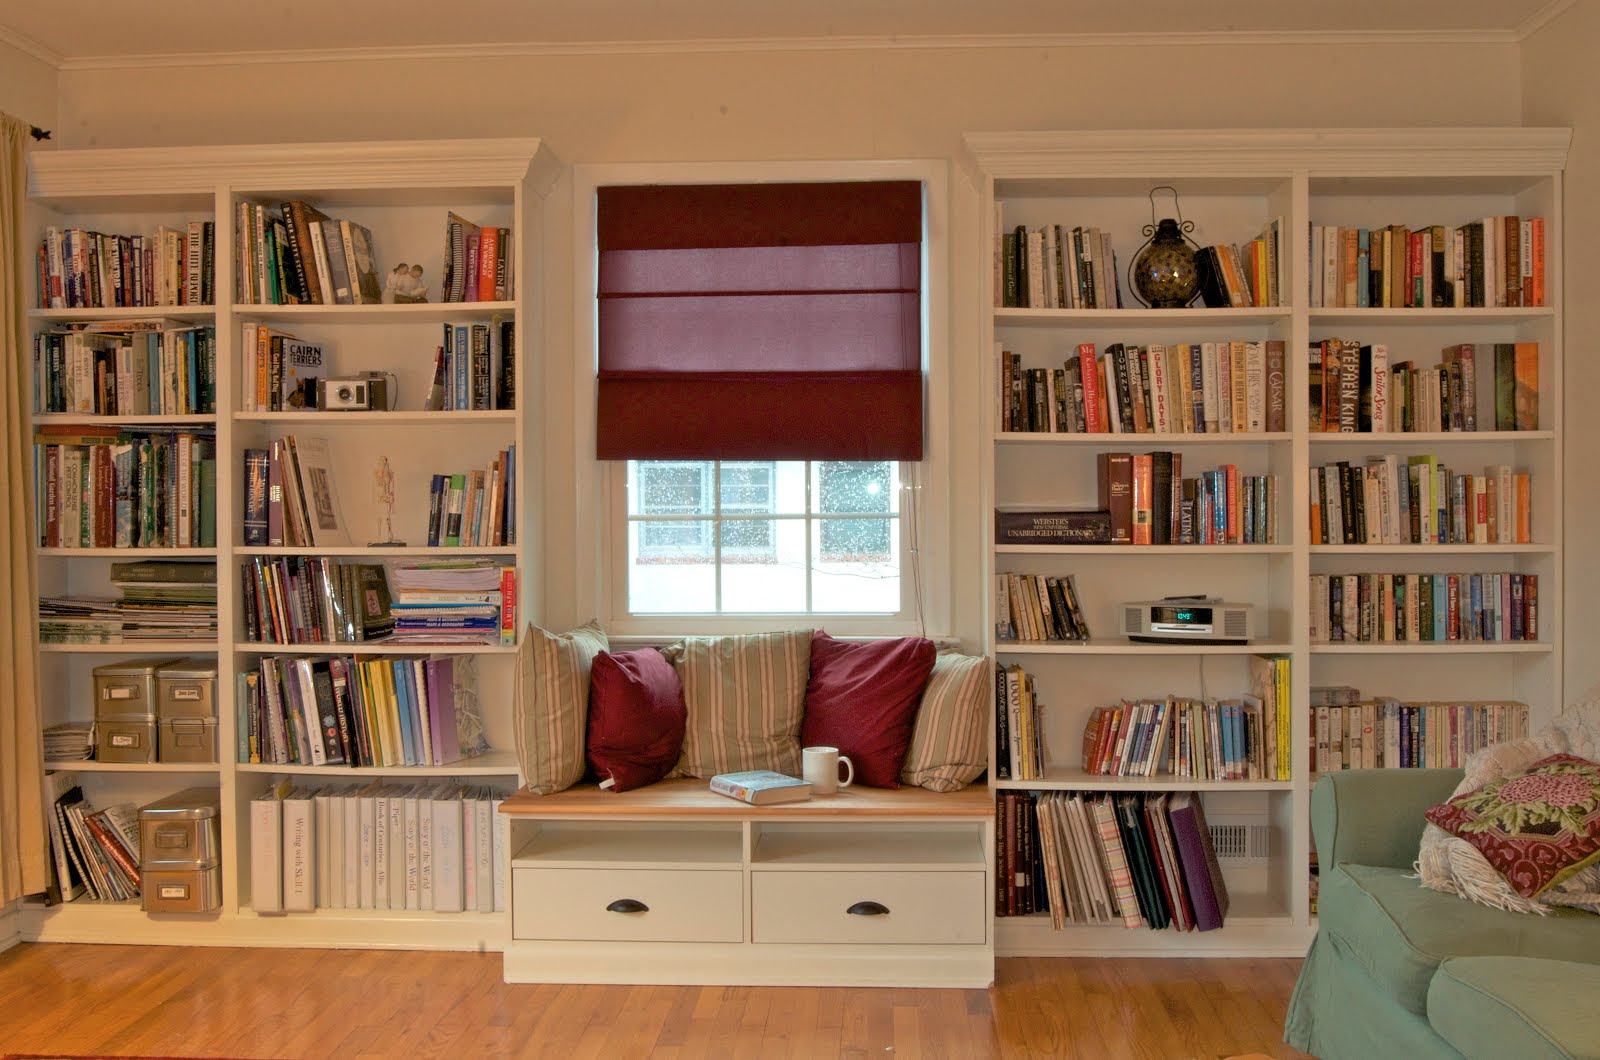 Living Room with a Window Seat, All Rooms / Living Photos / Living ...